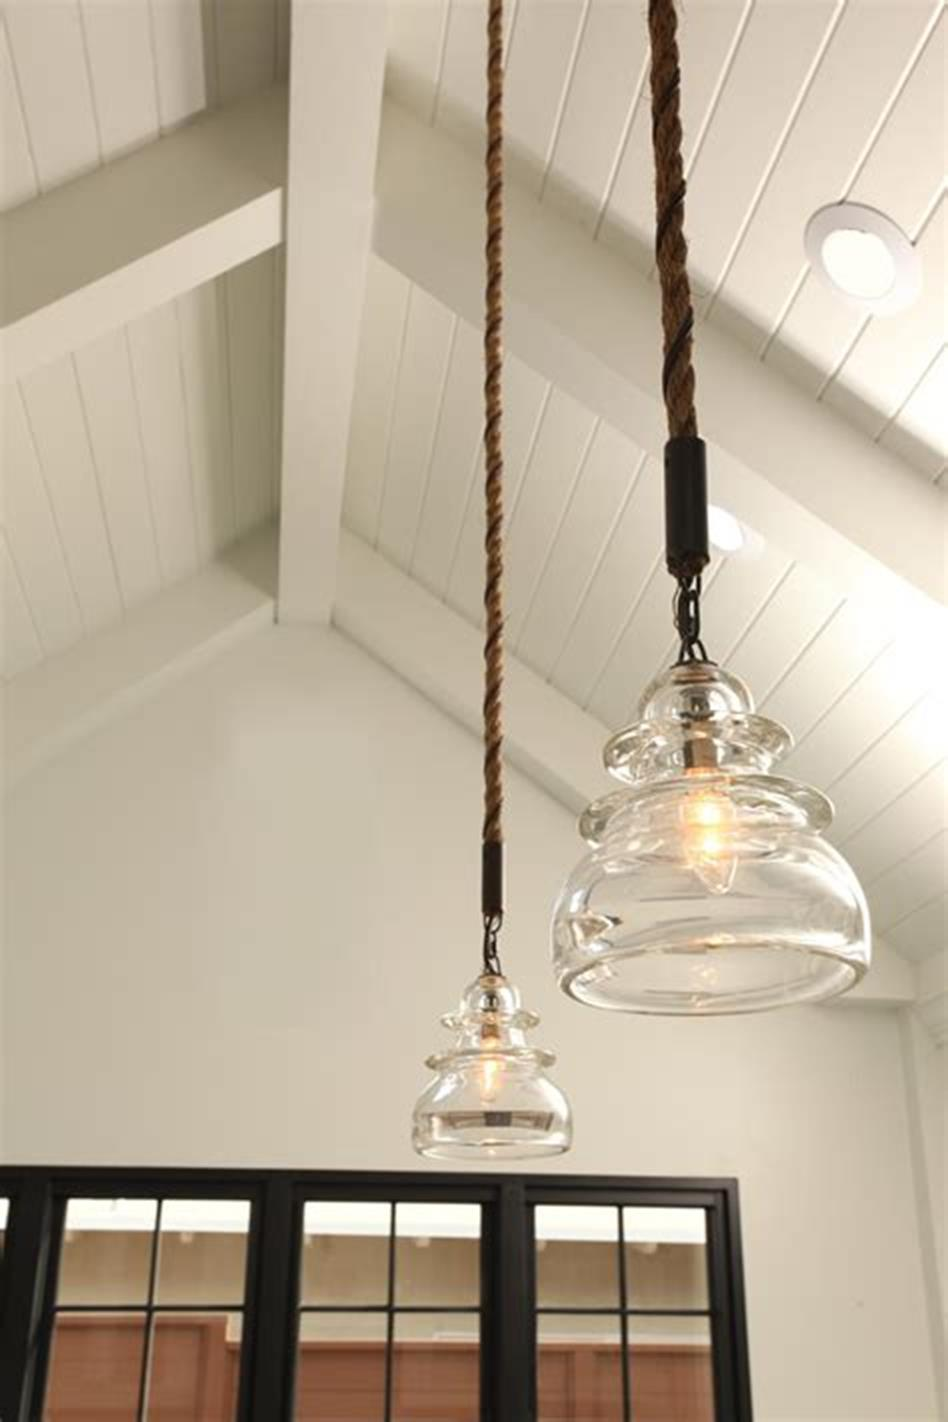 50 Inspiring Farmhouse Style Kitchen Lighting Fixtures Ideas 64